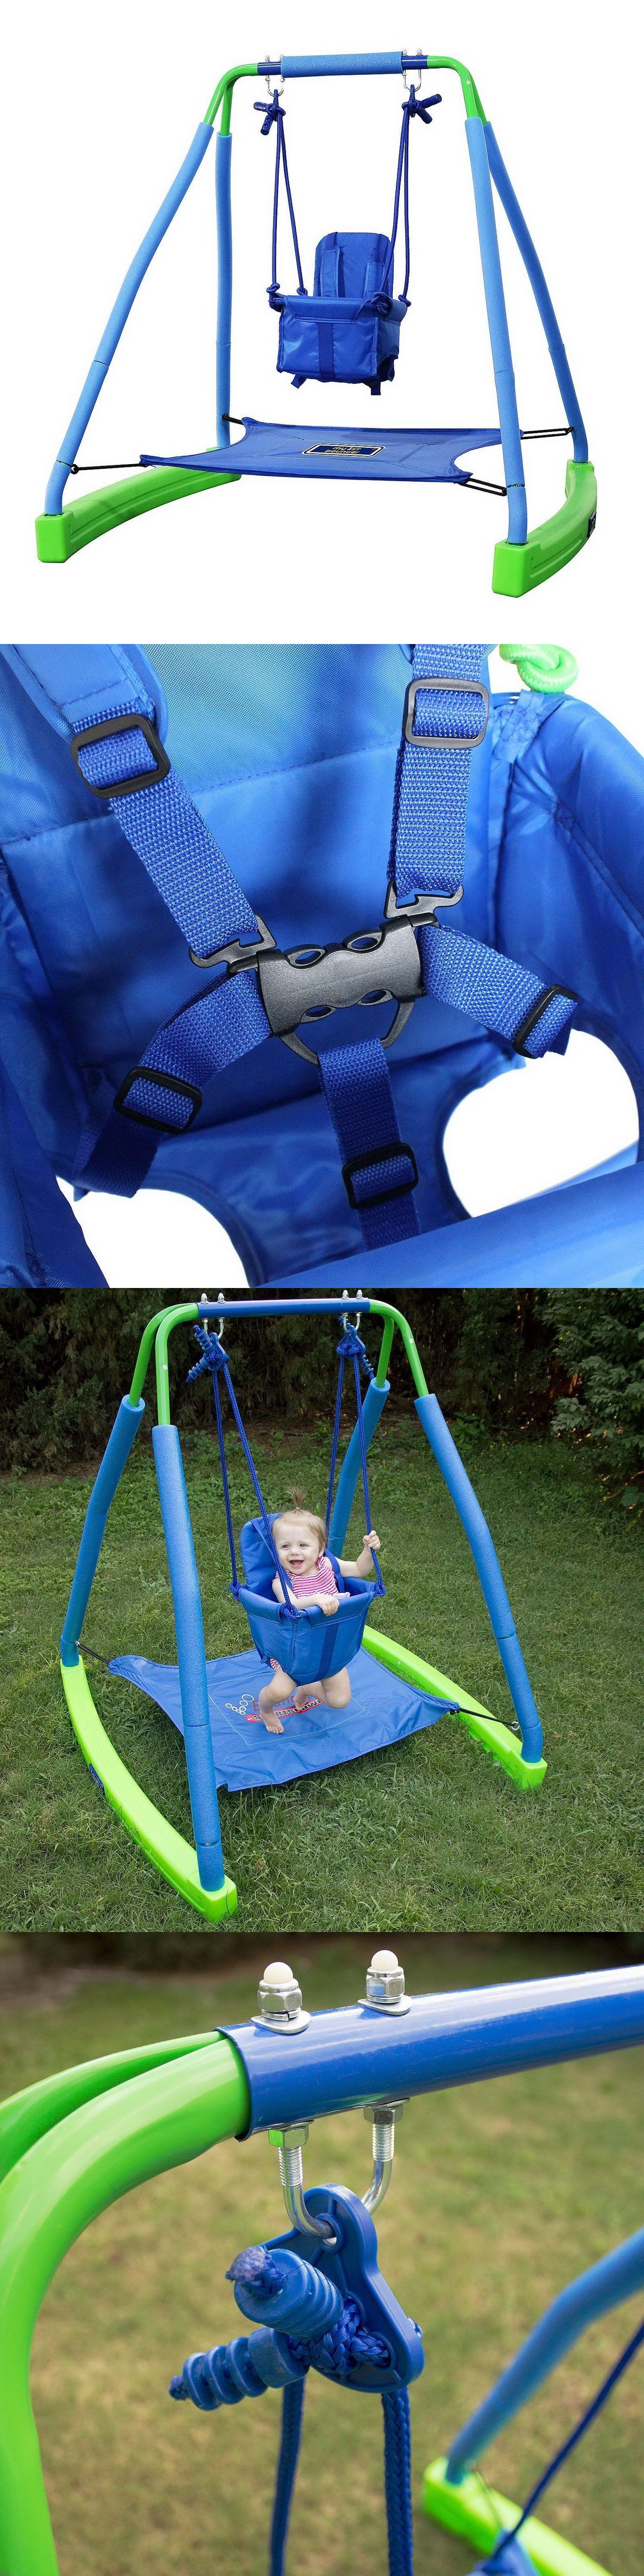 baby swings 2990 my first toddler baby bucket swing with bouncer safety harness age 9 36 months buy it now only 112 95 on ebay  [ 1600 x 6400 Pixel ]